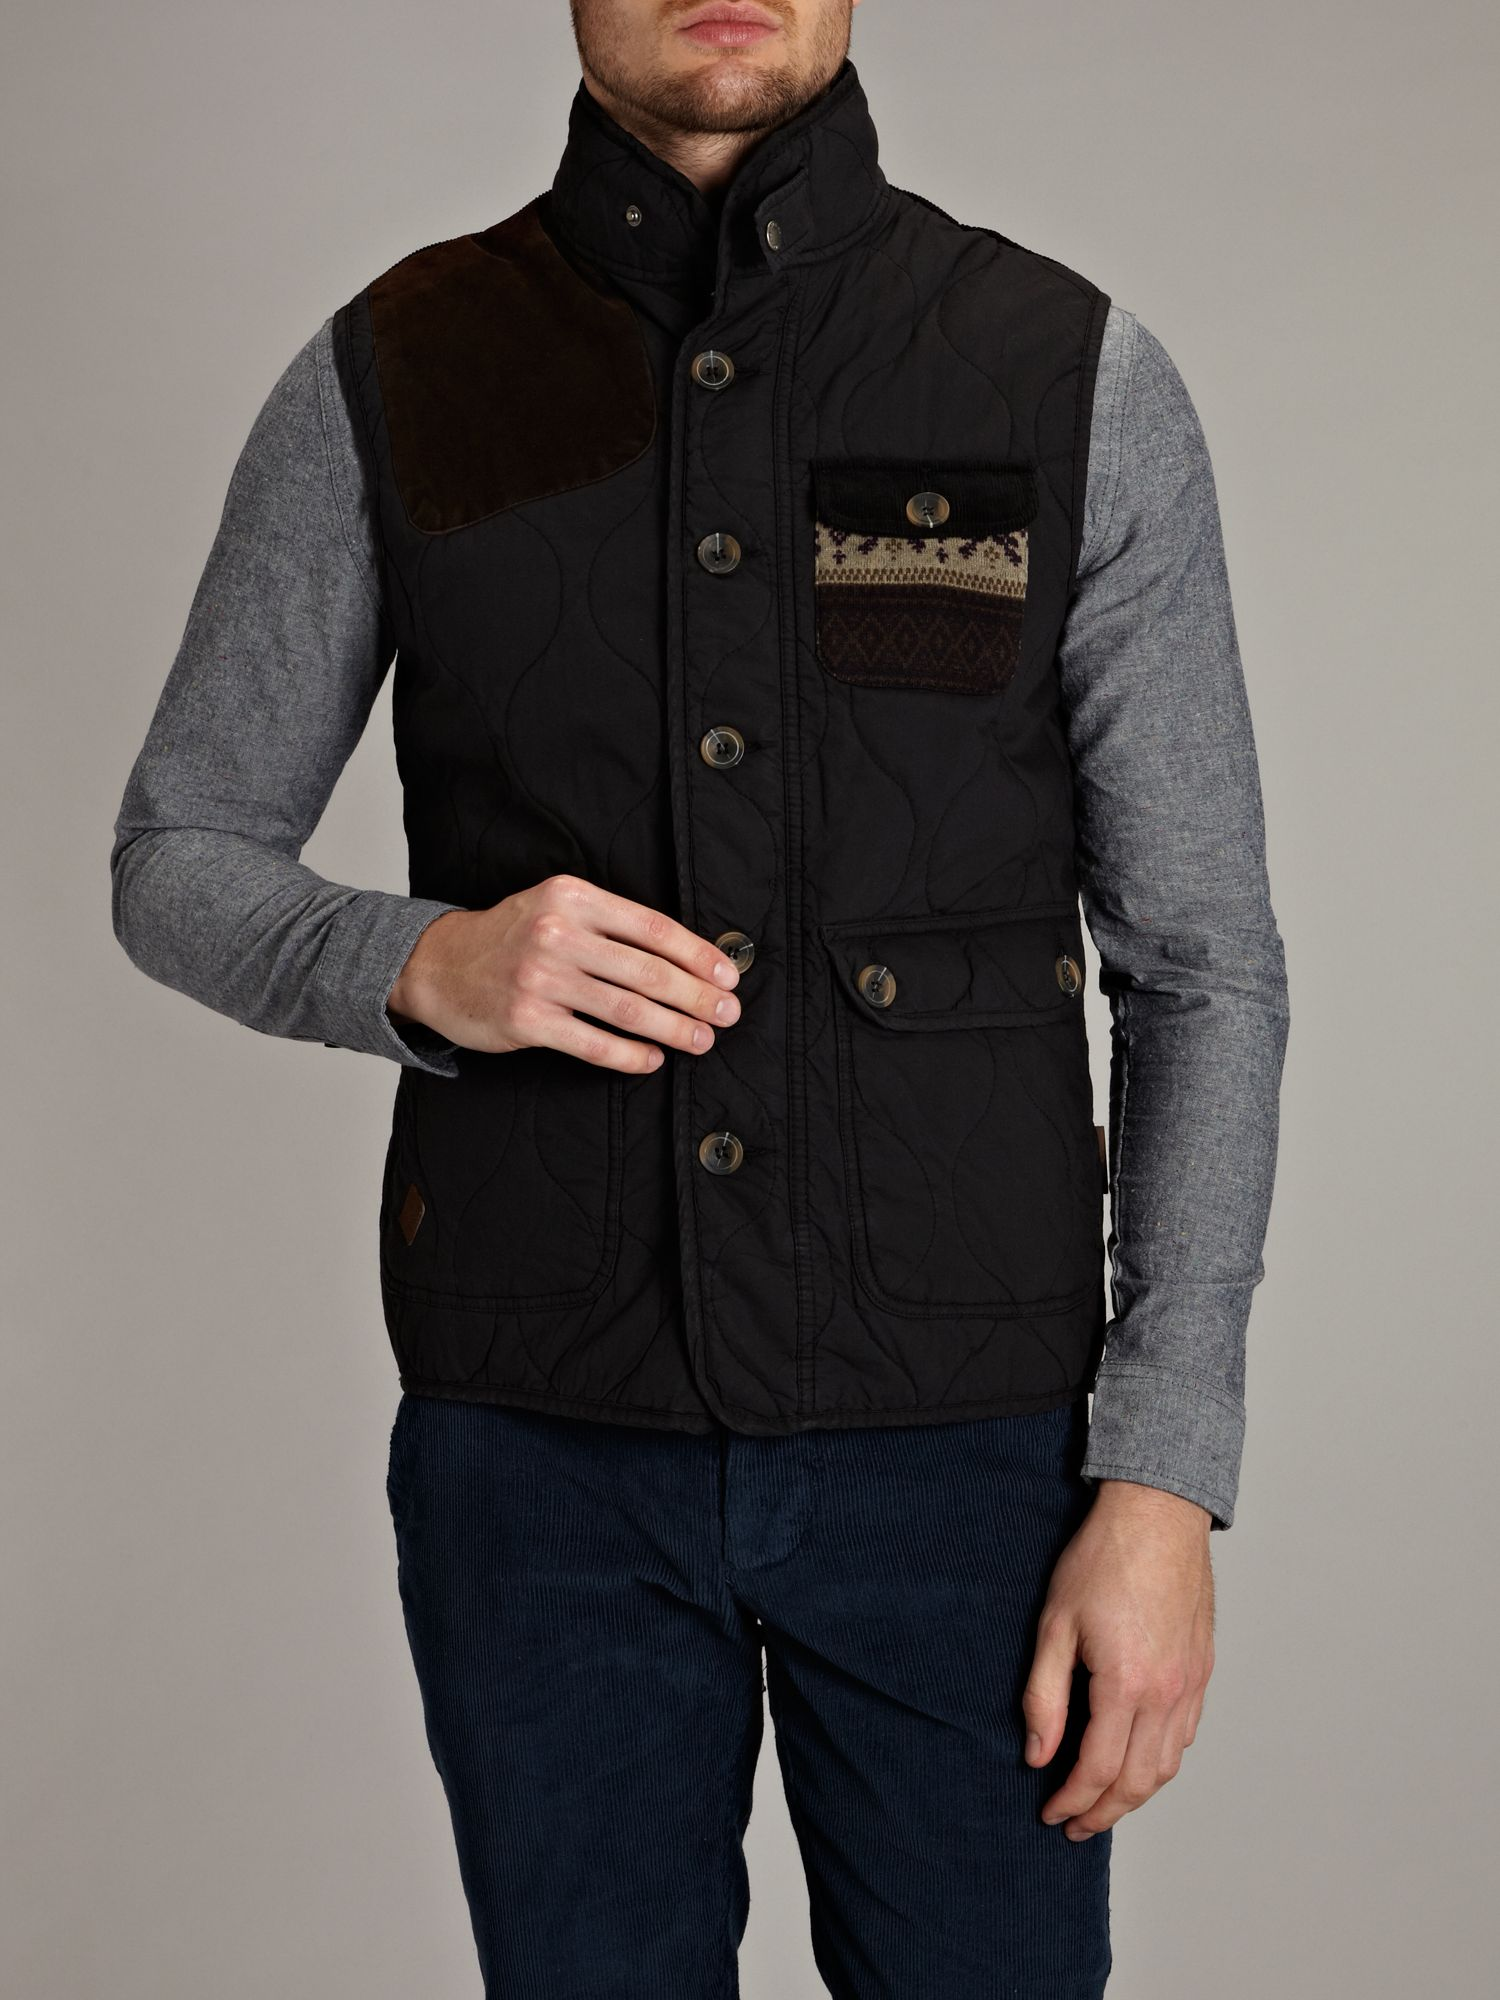 Button up gilet